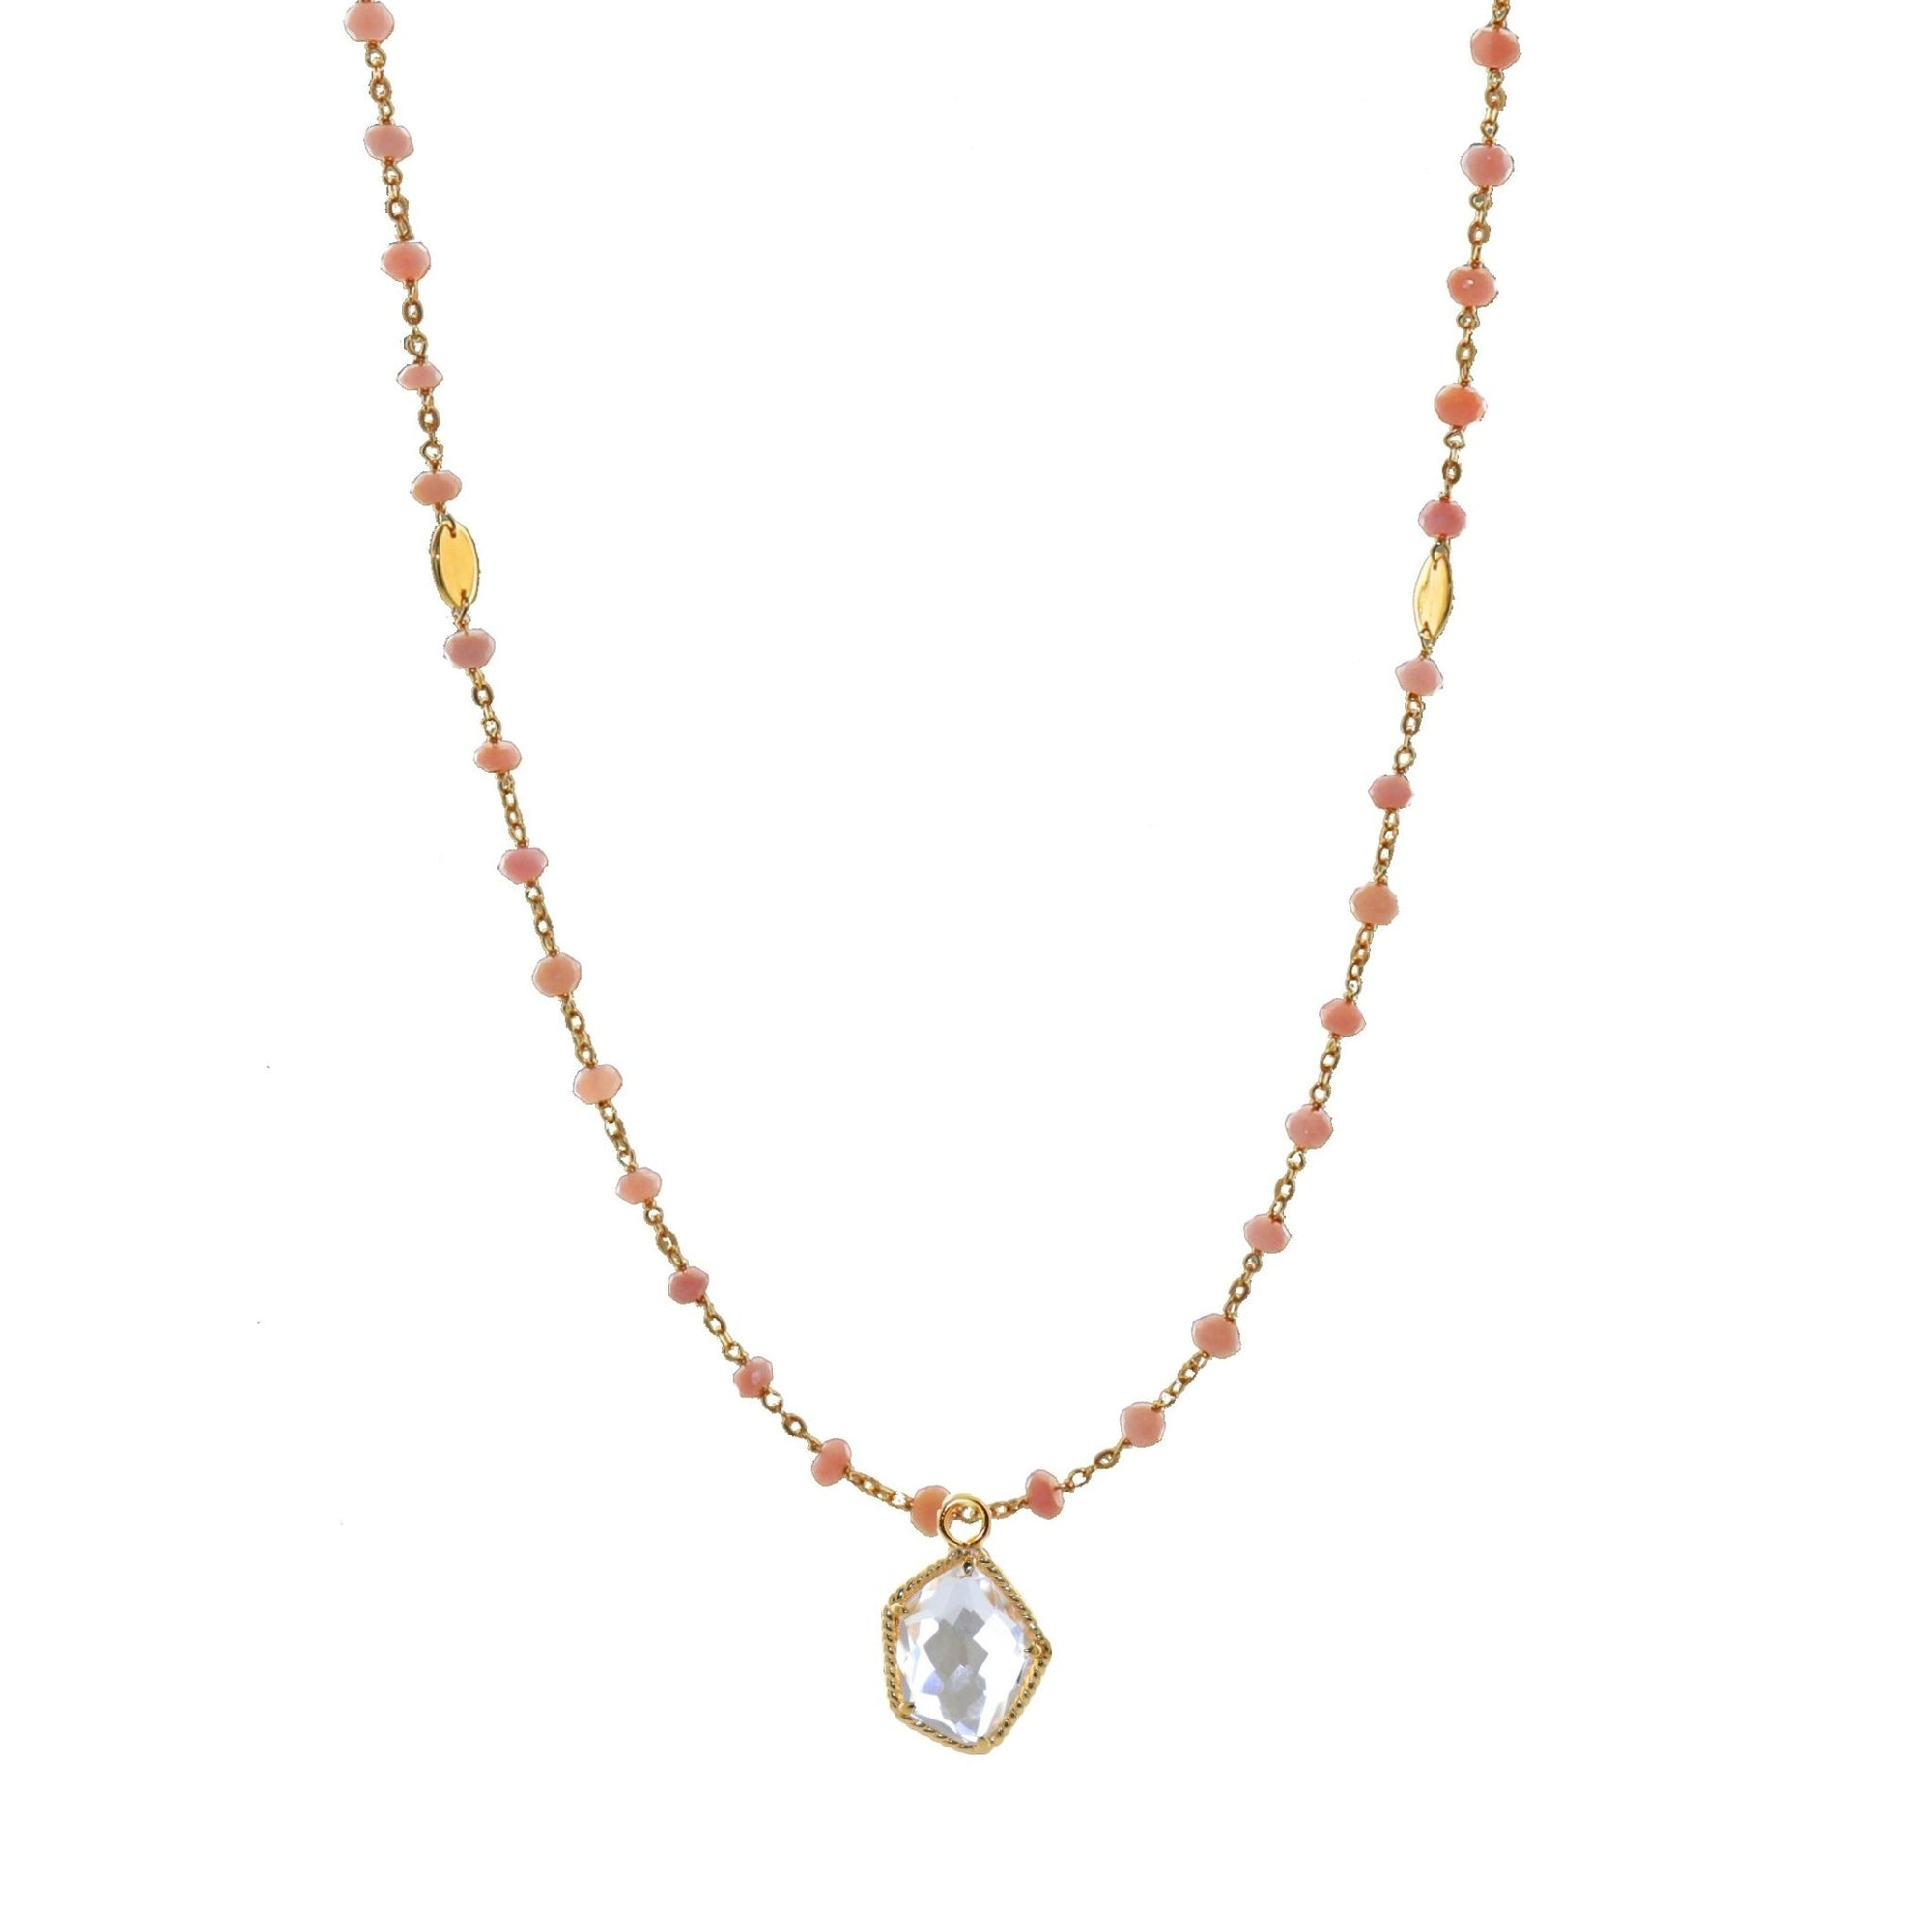 "ICONIC MIDI BEADED NECKLACE - PINK OPAL & GOLD 24-25"" - SO PRETTY CARA COTTER"